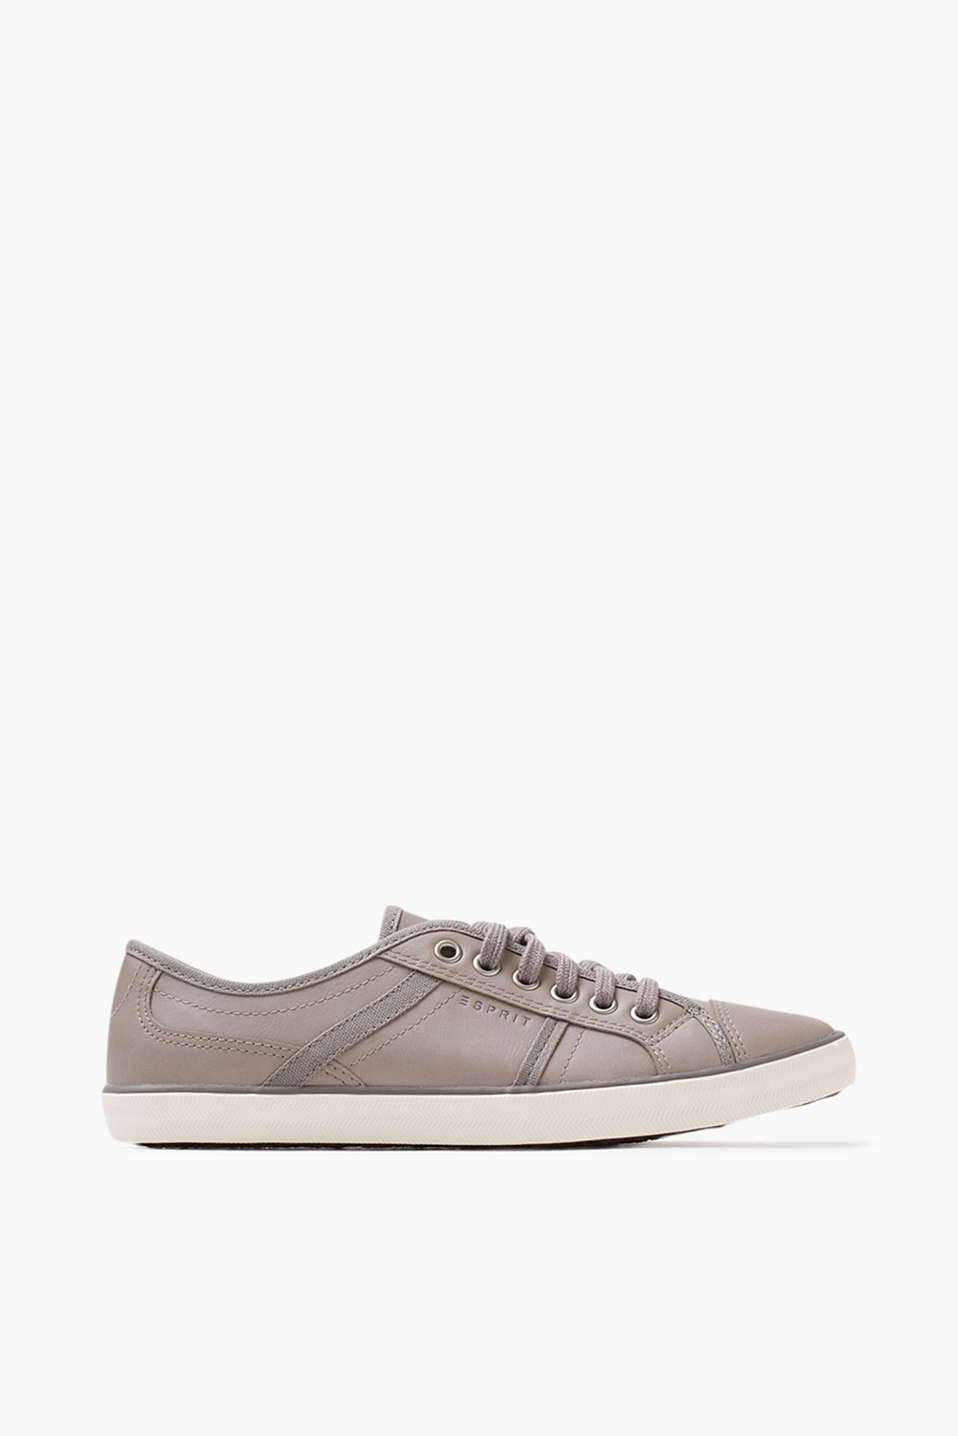 An everyday fave: Trainers with a flat rubber outsole in imitation smooth leather